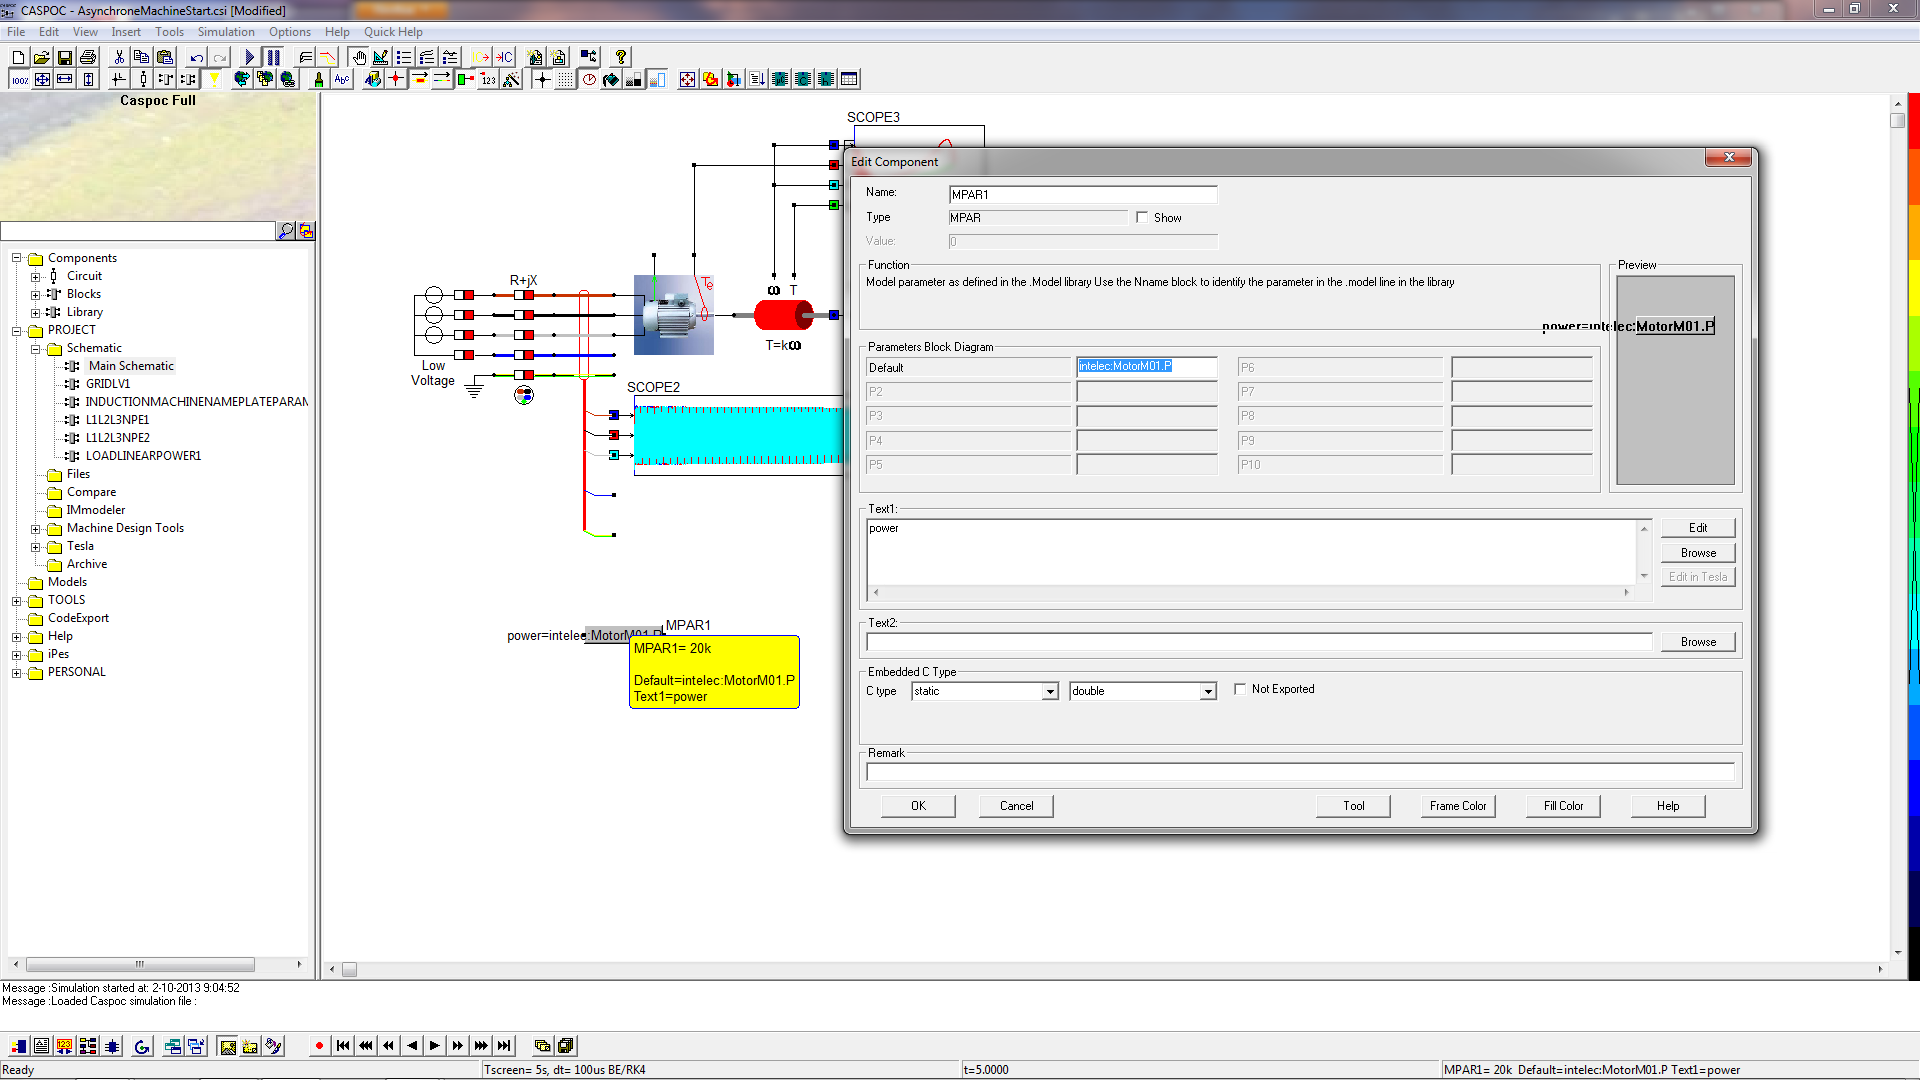 Caspoc Help Matlab To Software Tools Smps Circuits Projects Schematic Tagged With Brclick Close The Image